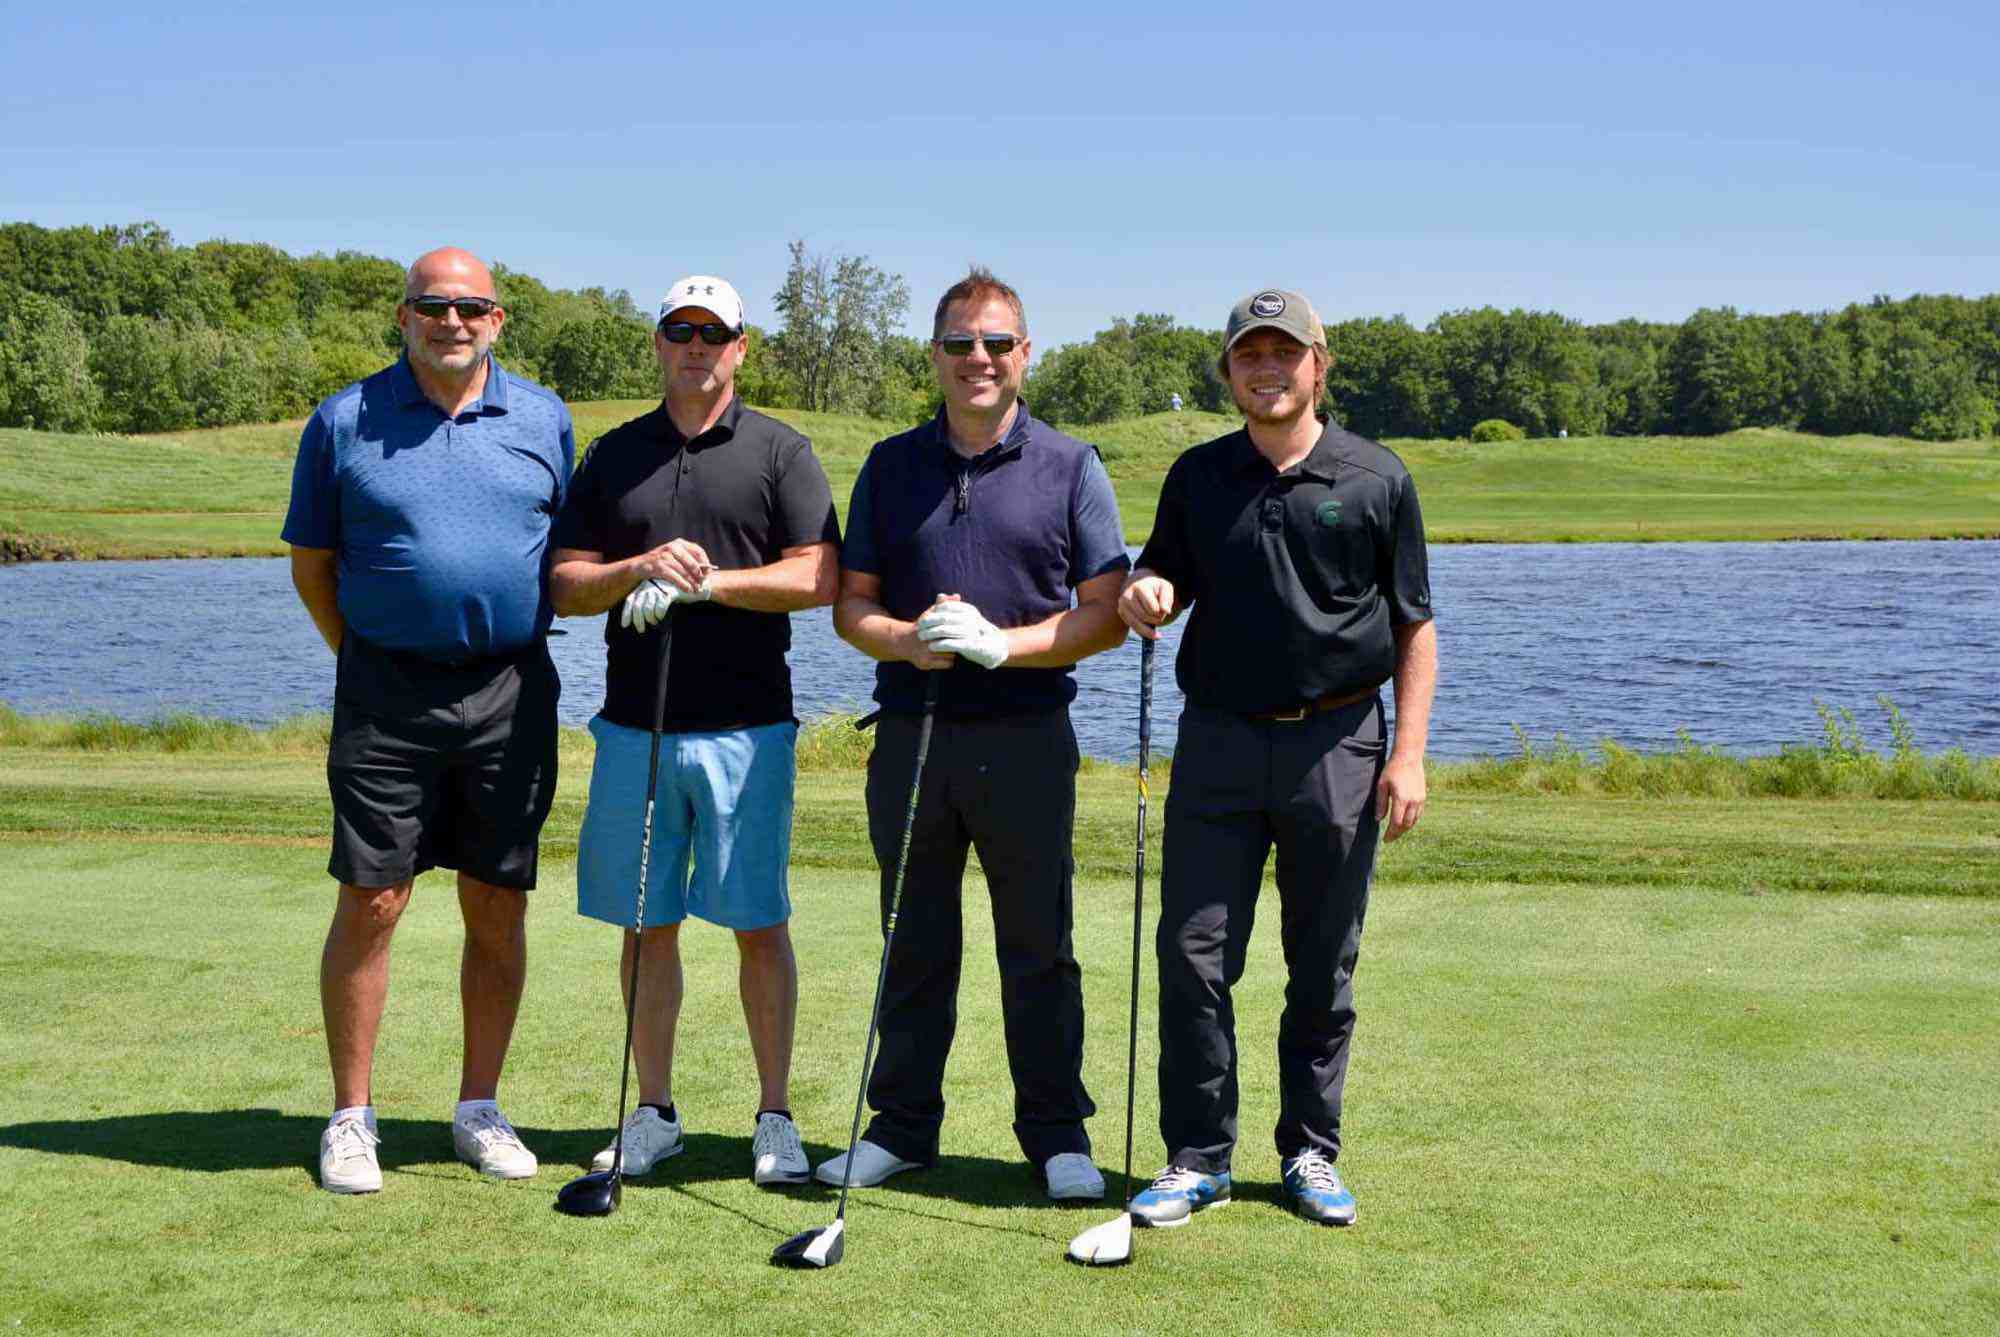 PIONEER CONSTRUCTION FOURSOME (Left to right): Randy Zandbergen, Steve Hansma (Closes to the Flag Winner), Tim Schowalter, Sam Schowalter